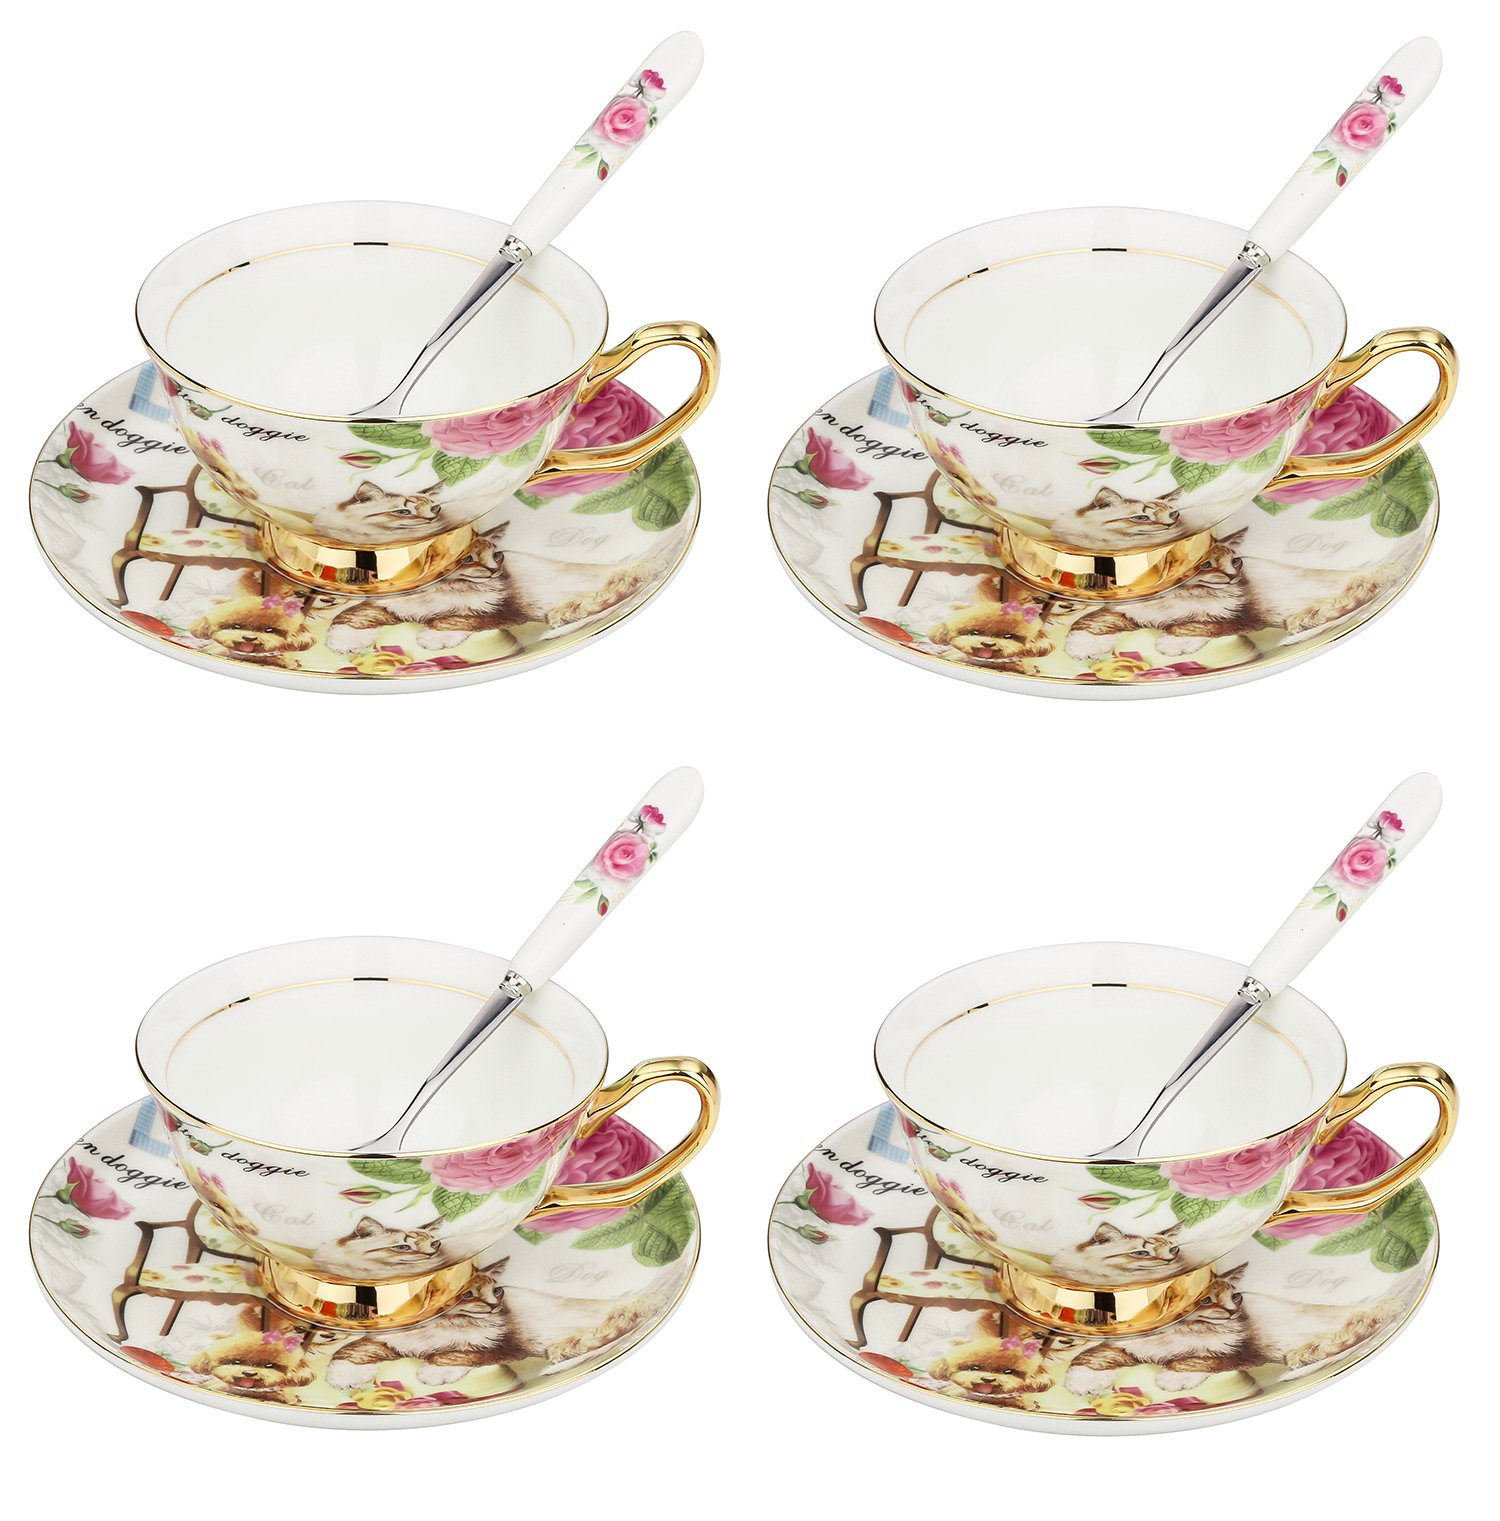 ARTVIGOR Dog and Cat Printed New Bone China Cup and Saucer Set with Spoon, Drinkware Set for Coffee and Tea